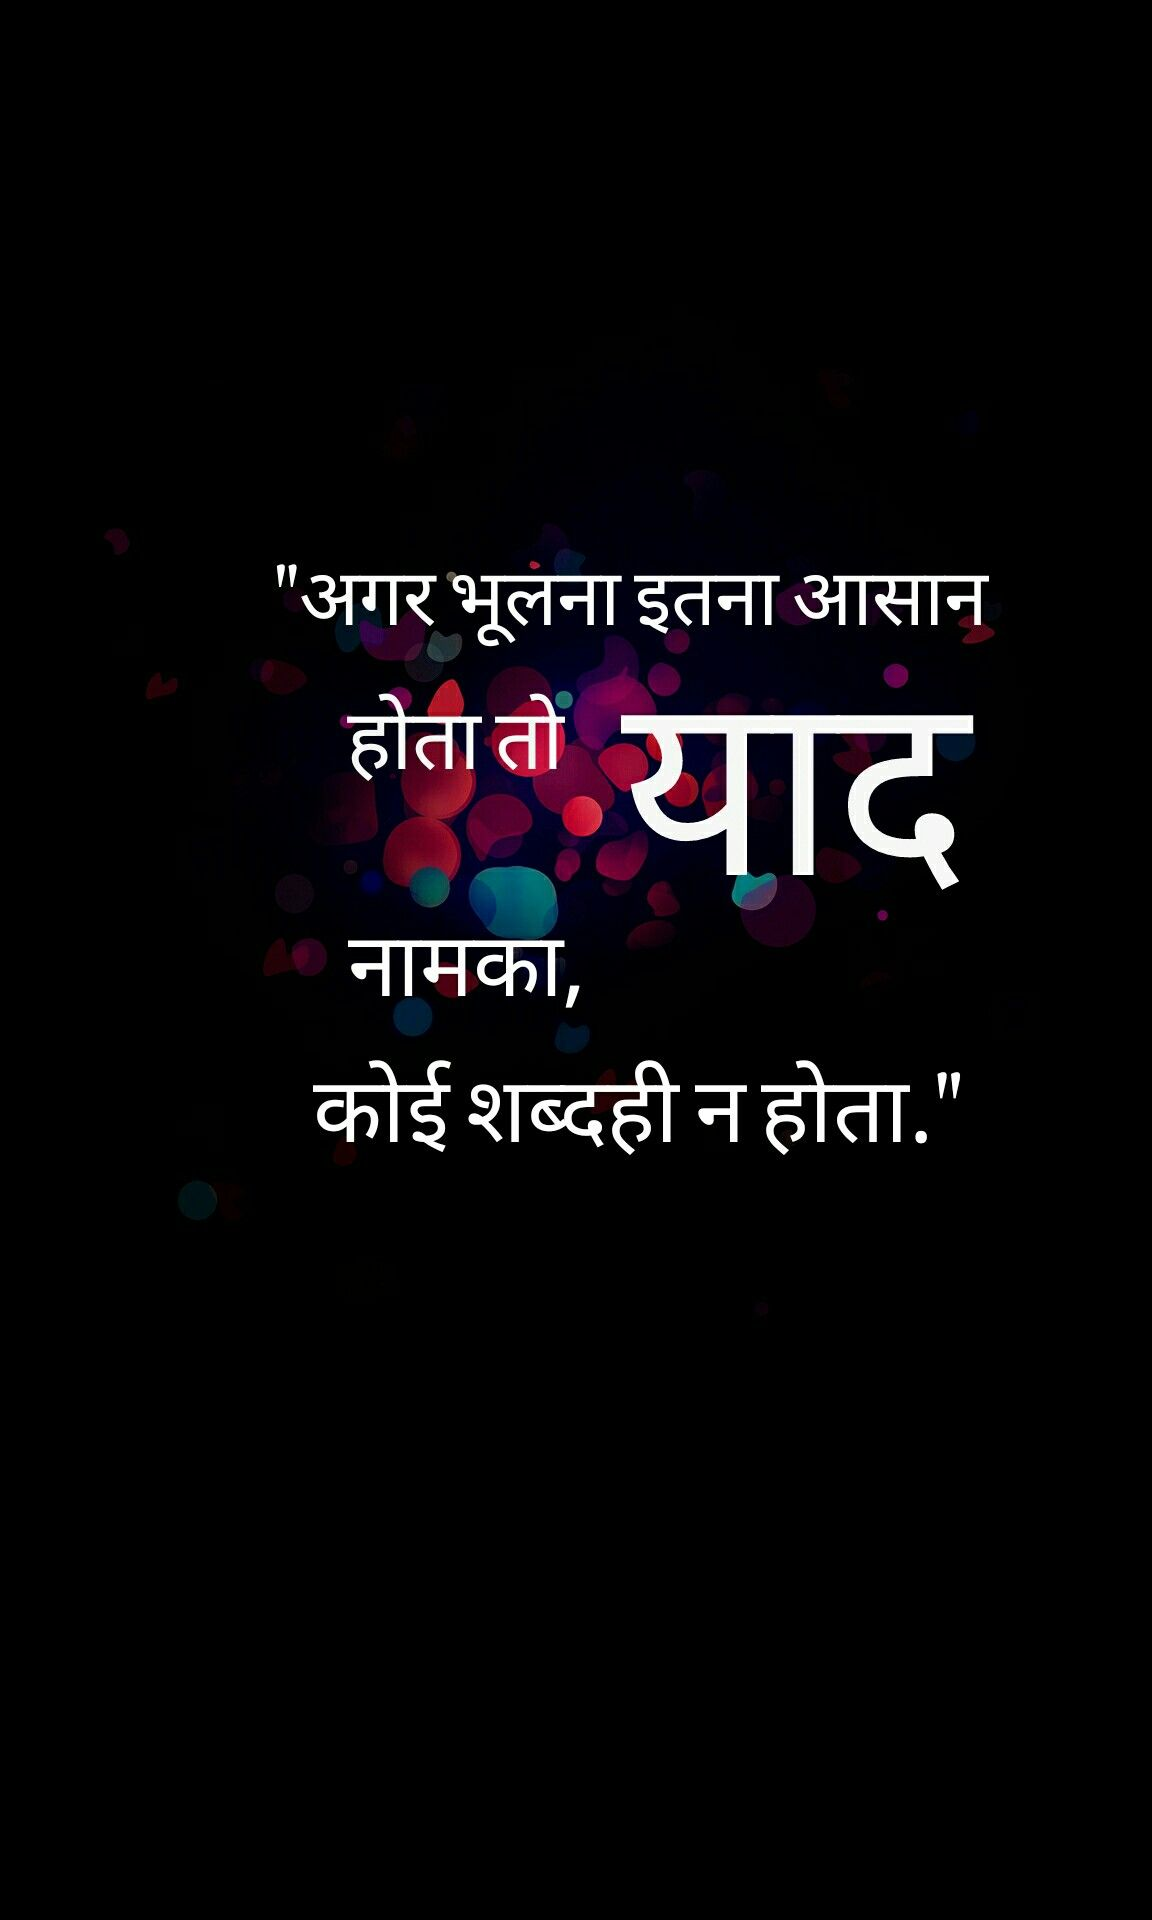 Quotes Hindi Yaad Lost Words Easy Quotes Pinterest Hindi